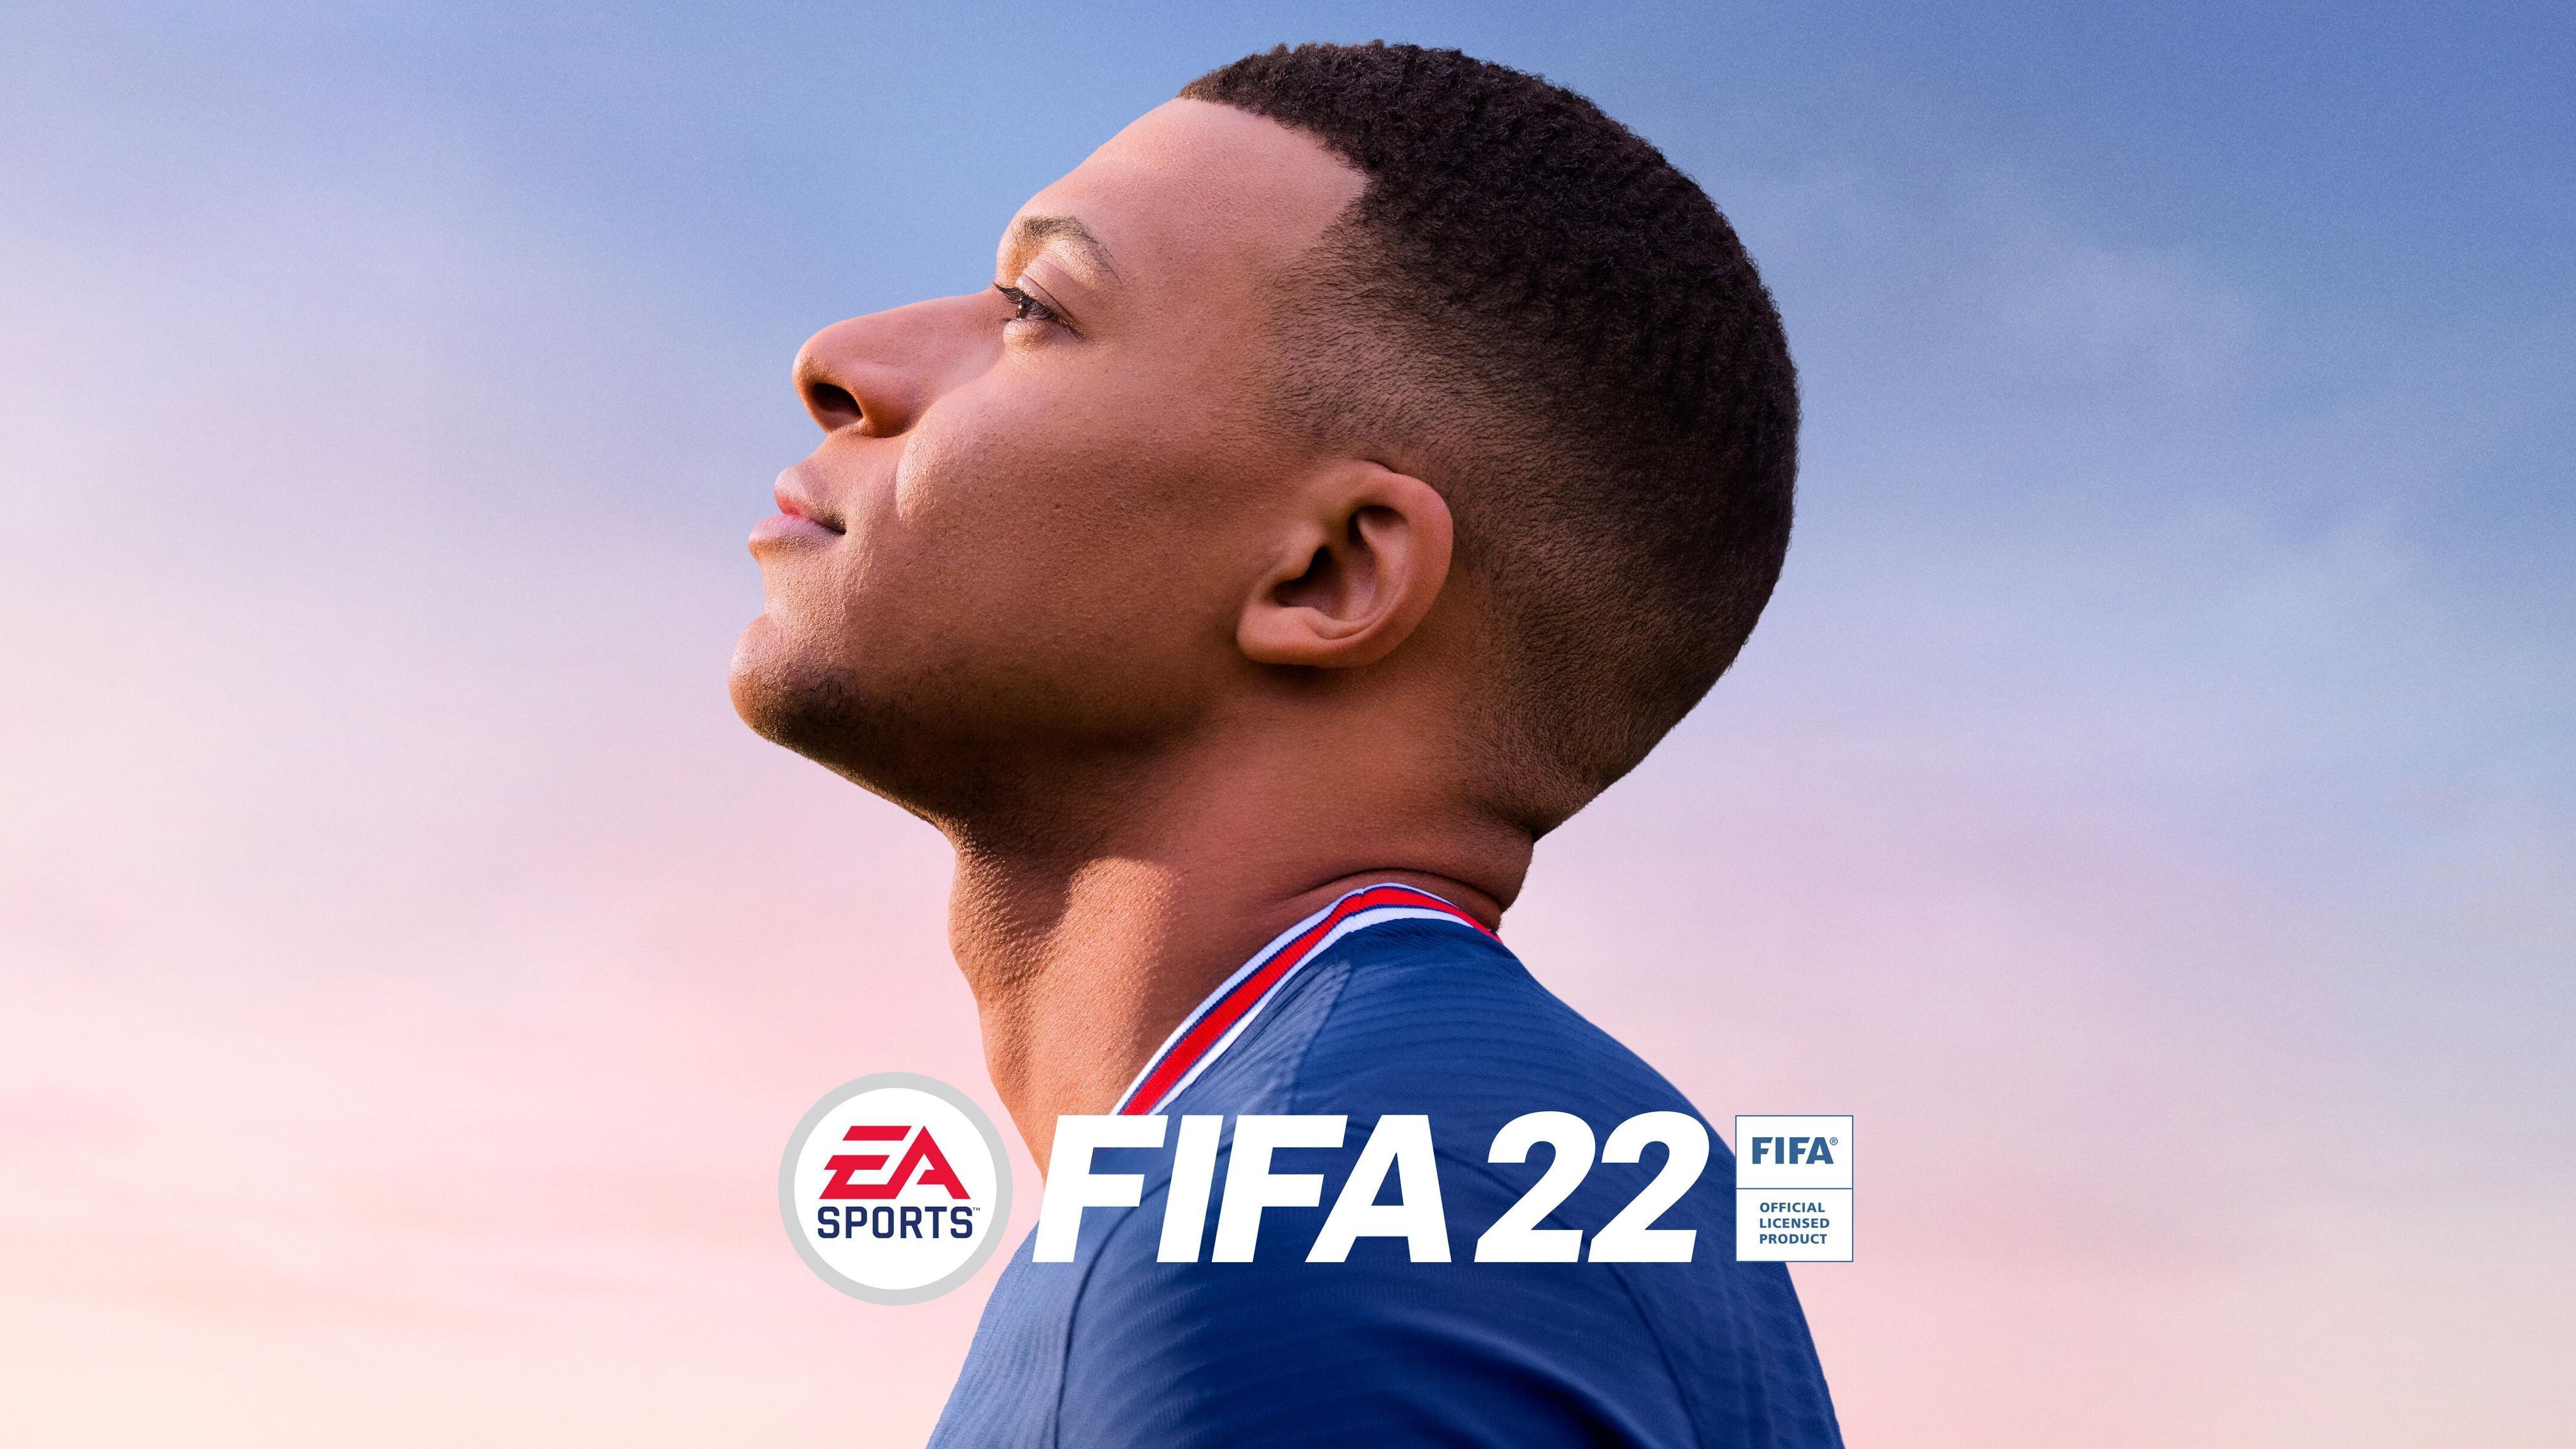 FIFA 22 will keep the FUT Preview Packs introduced in FIFA 21, EA confirms